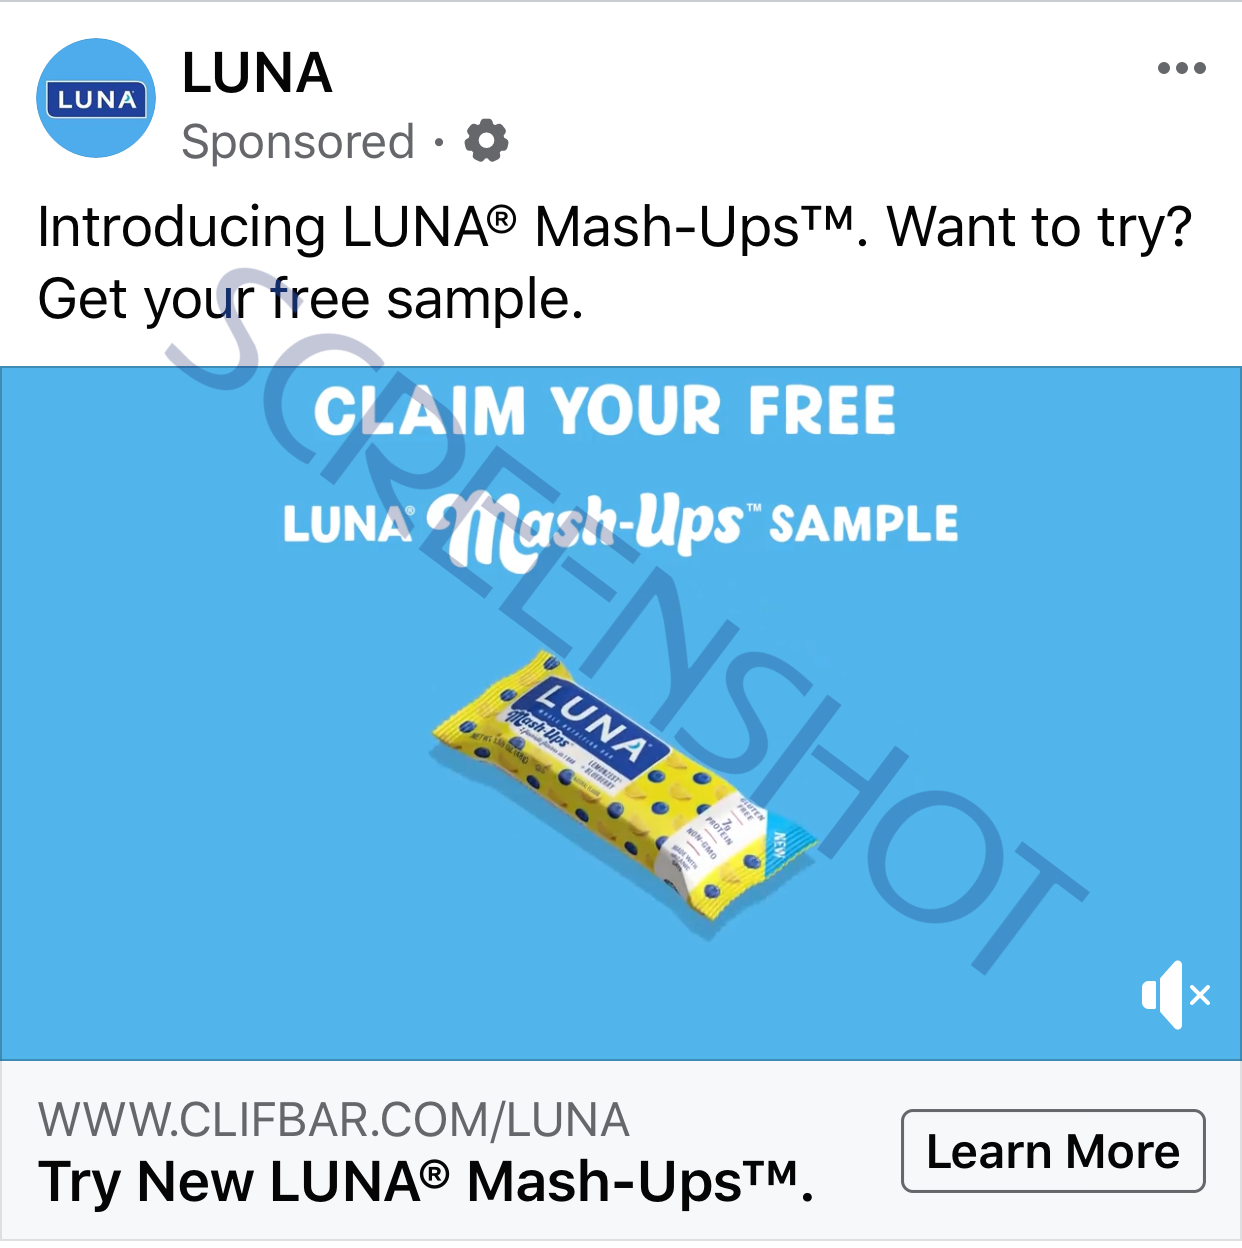 FREE LUNA Mash-Ups Bar Sponsored Ad on Facebook